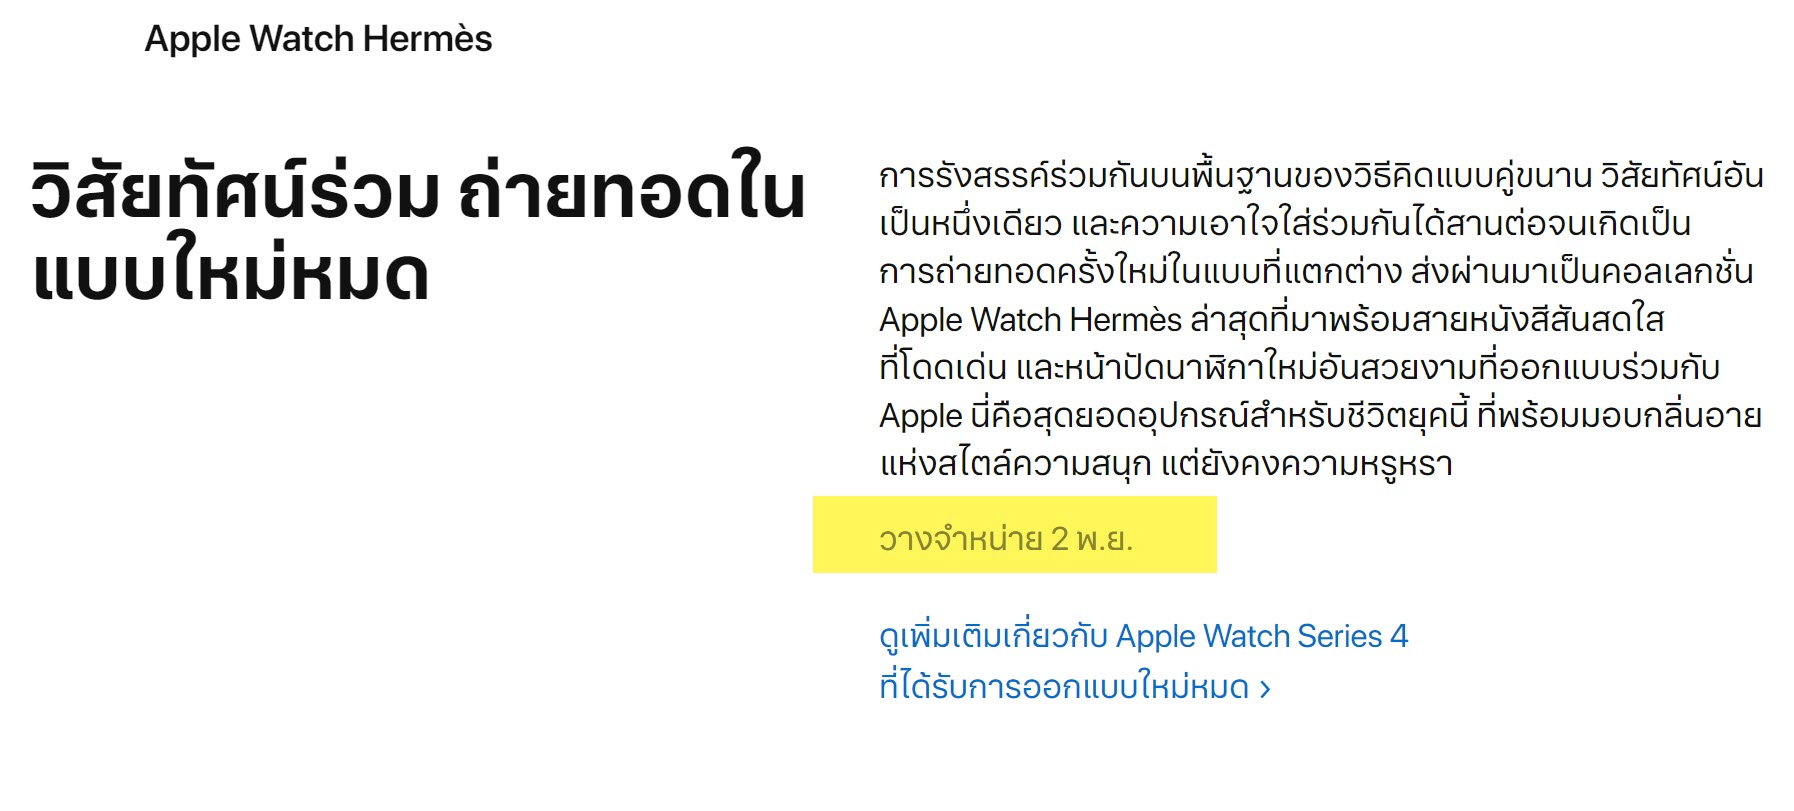 Apple Watch Hermes Release Th Confirm Img 1